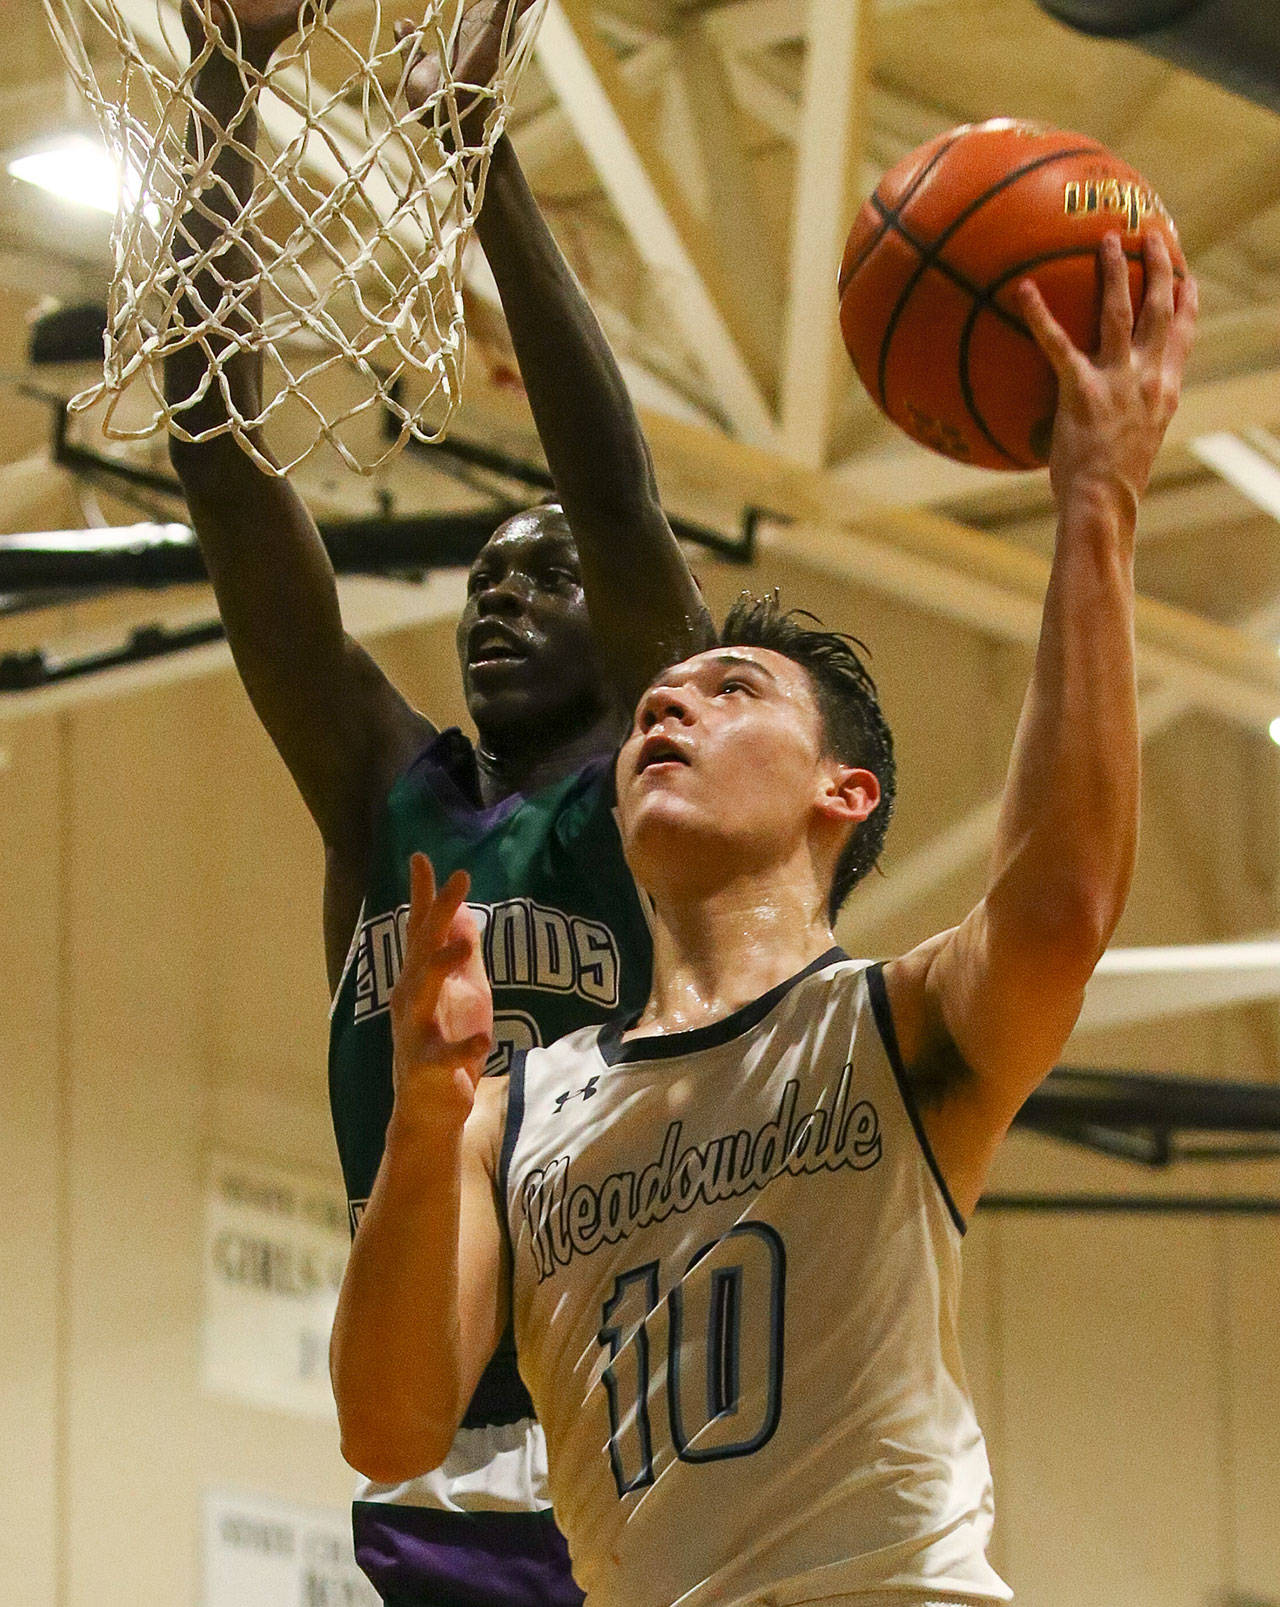 Meadowdale's Colton Walsh (10) attempts a layup with Edmonds-Woodway's Nuer Bol defending Friday evening at Meadowdale High School in Lynnwood. Meadowdale won 64-53. (Kevin Clark / The Herald)